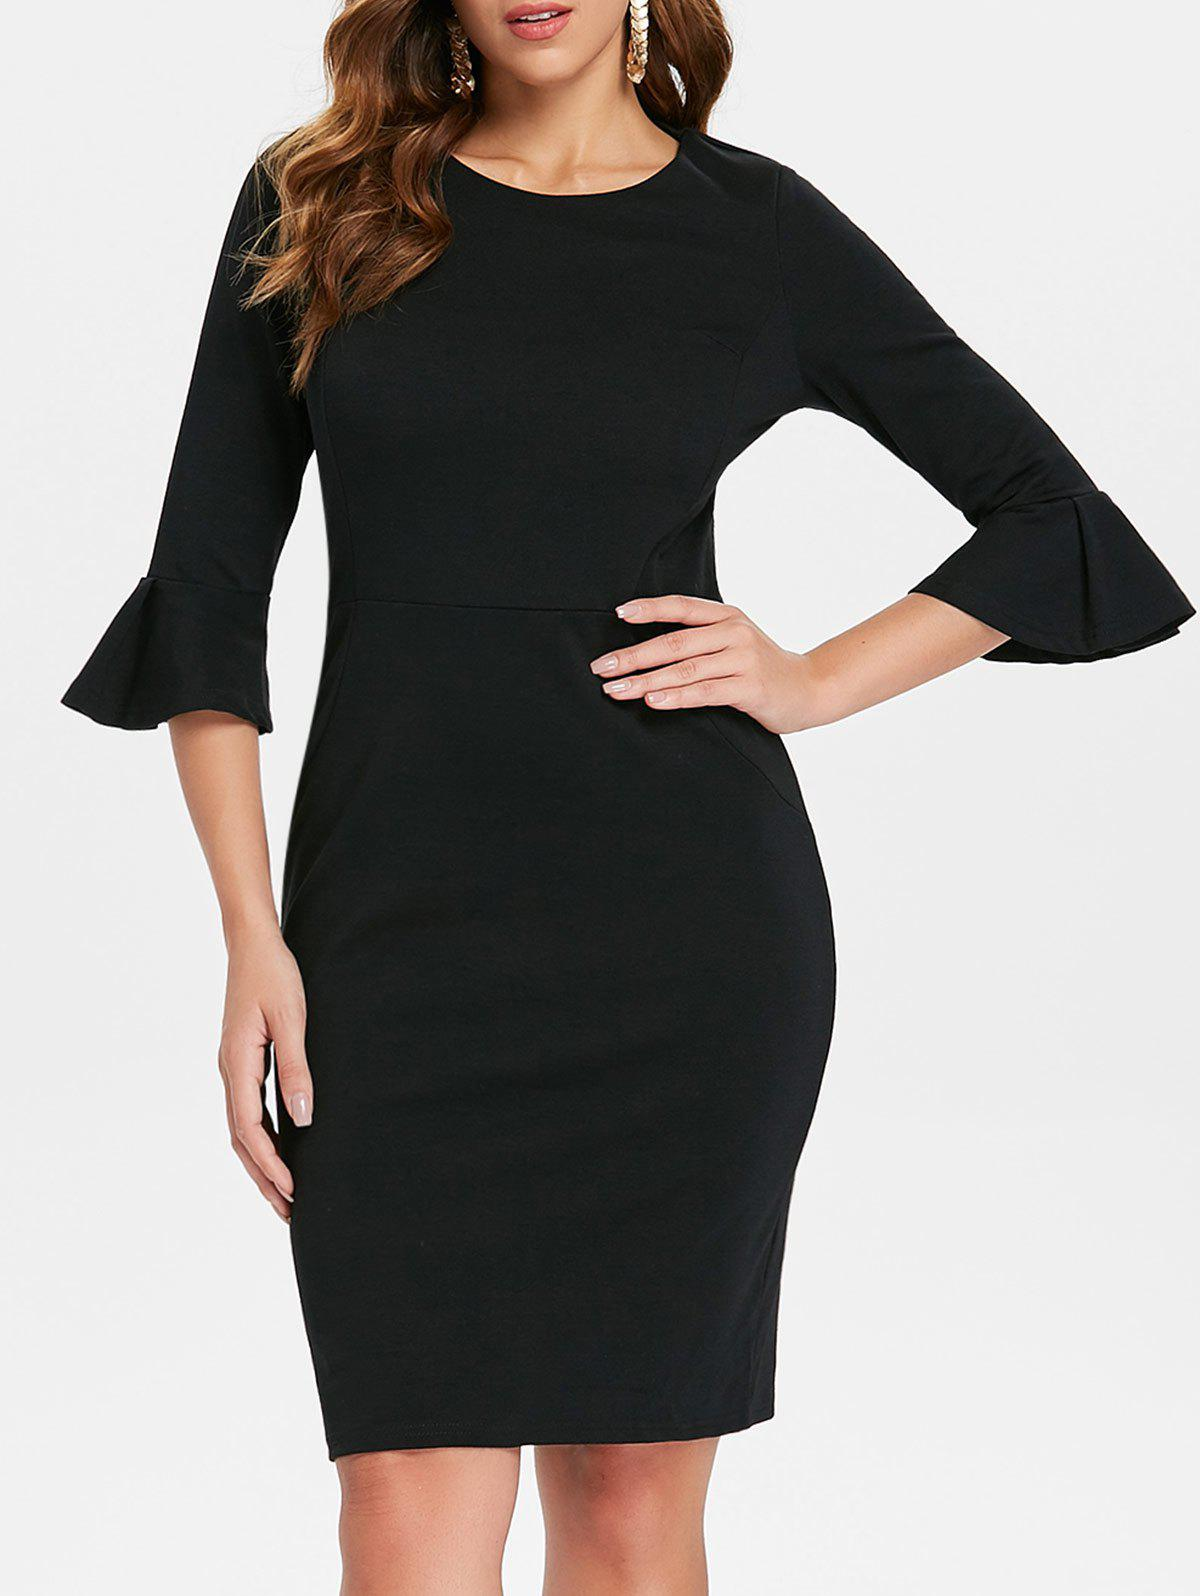 Chic Bodycon Bell Sleeve Knee Length Dress